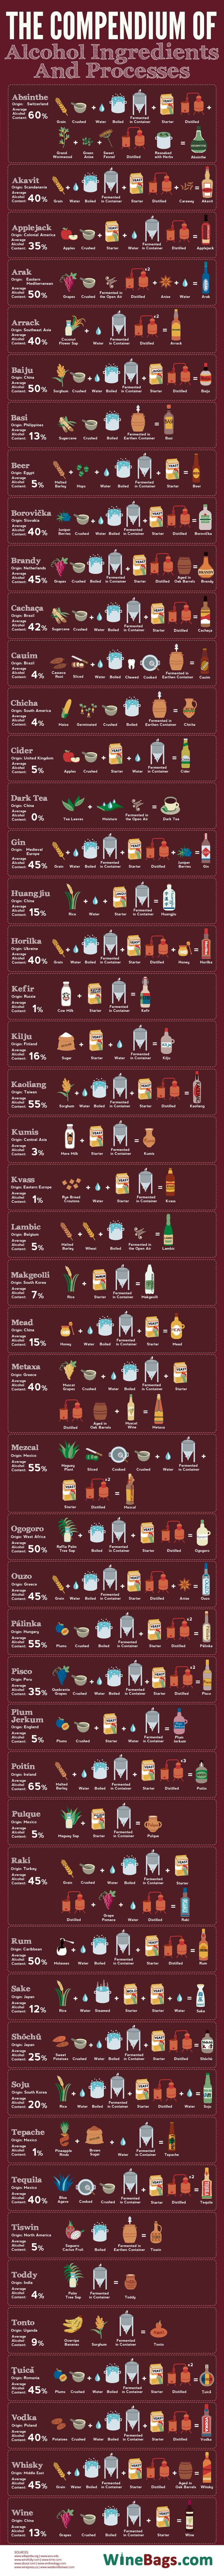 The Compendium of Alcohol Ingredients and Processes #Infographic #Food